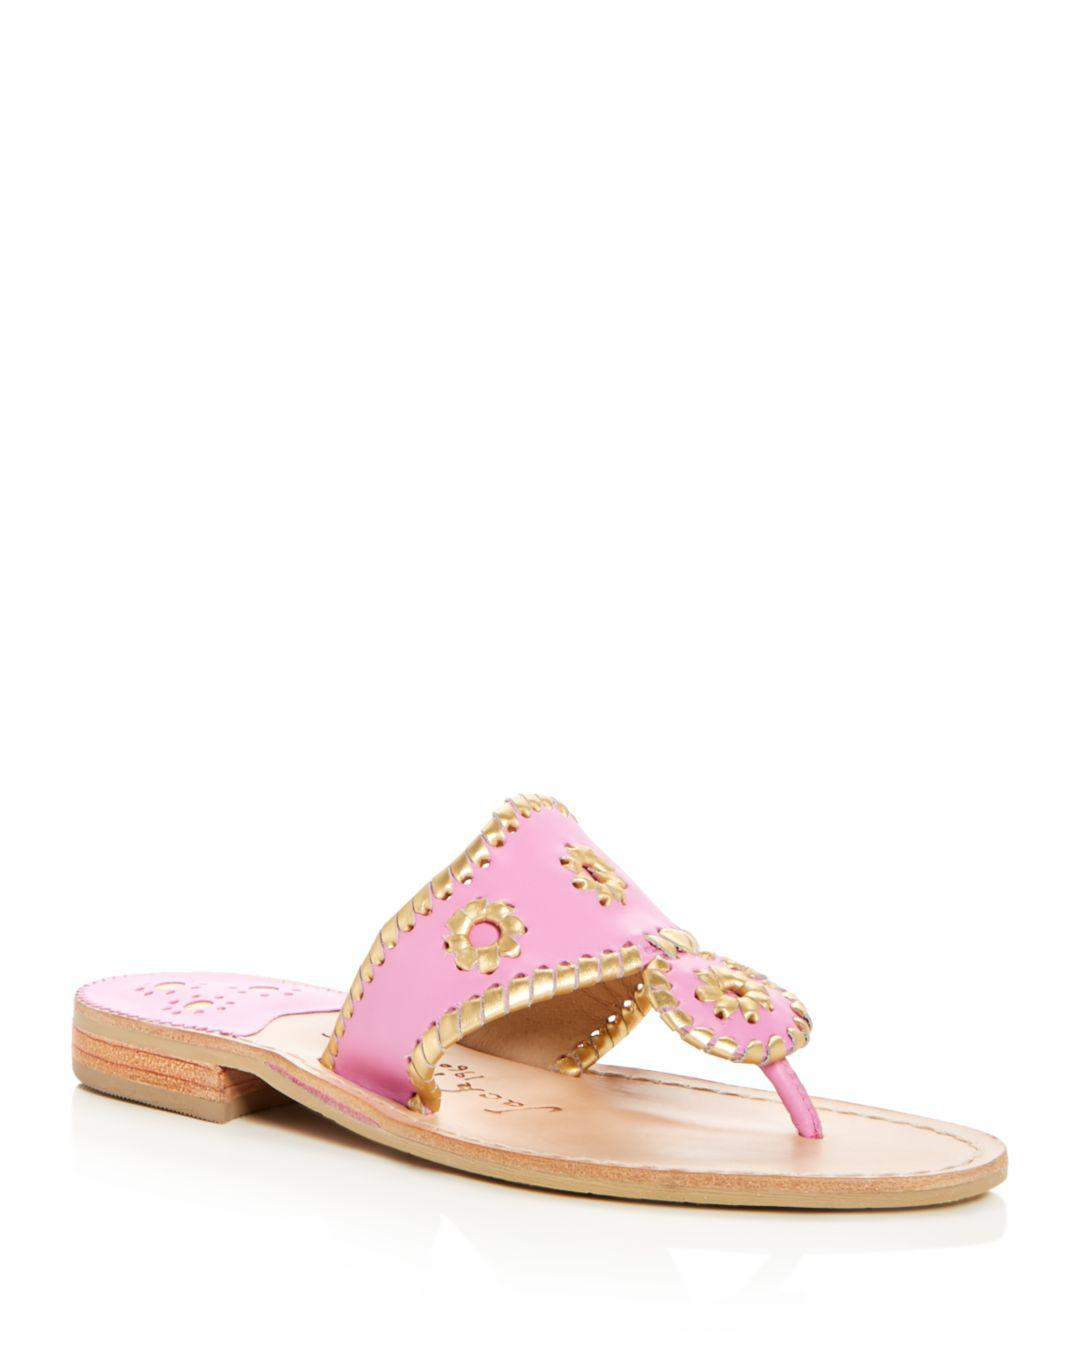 f96a3d0e4aa1a Gallery. Previously sold at  Bloomingdale s · Women s Thong Sandals